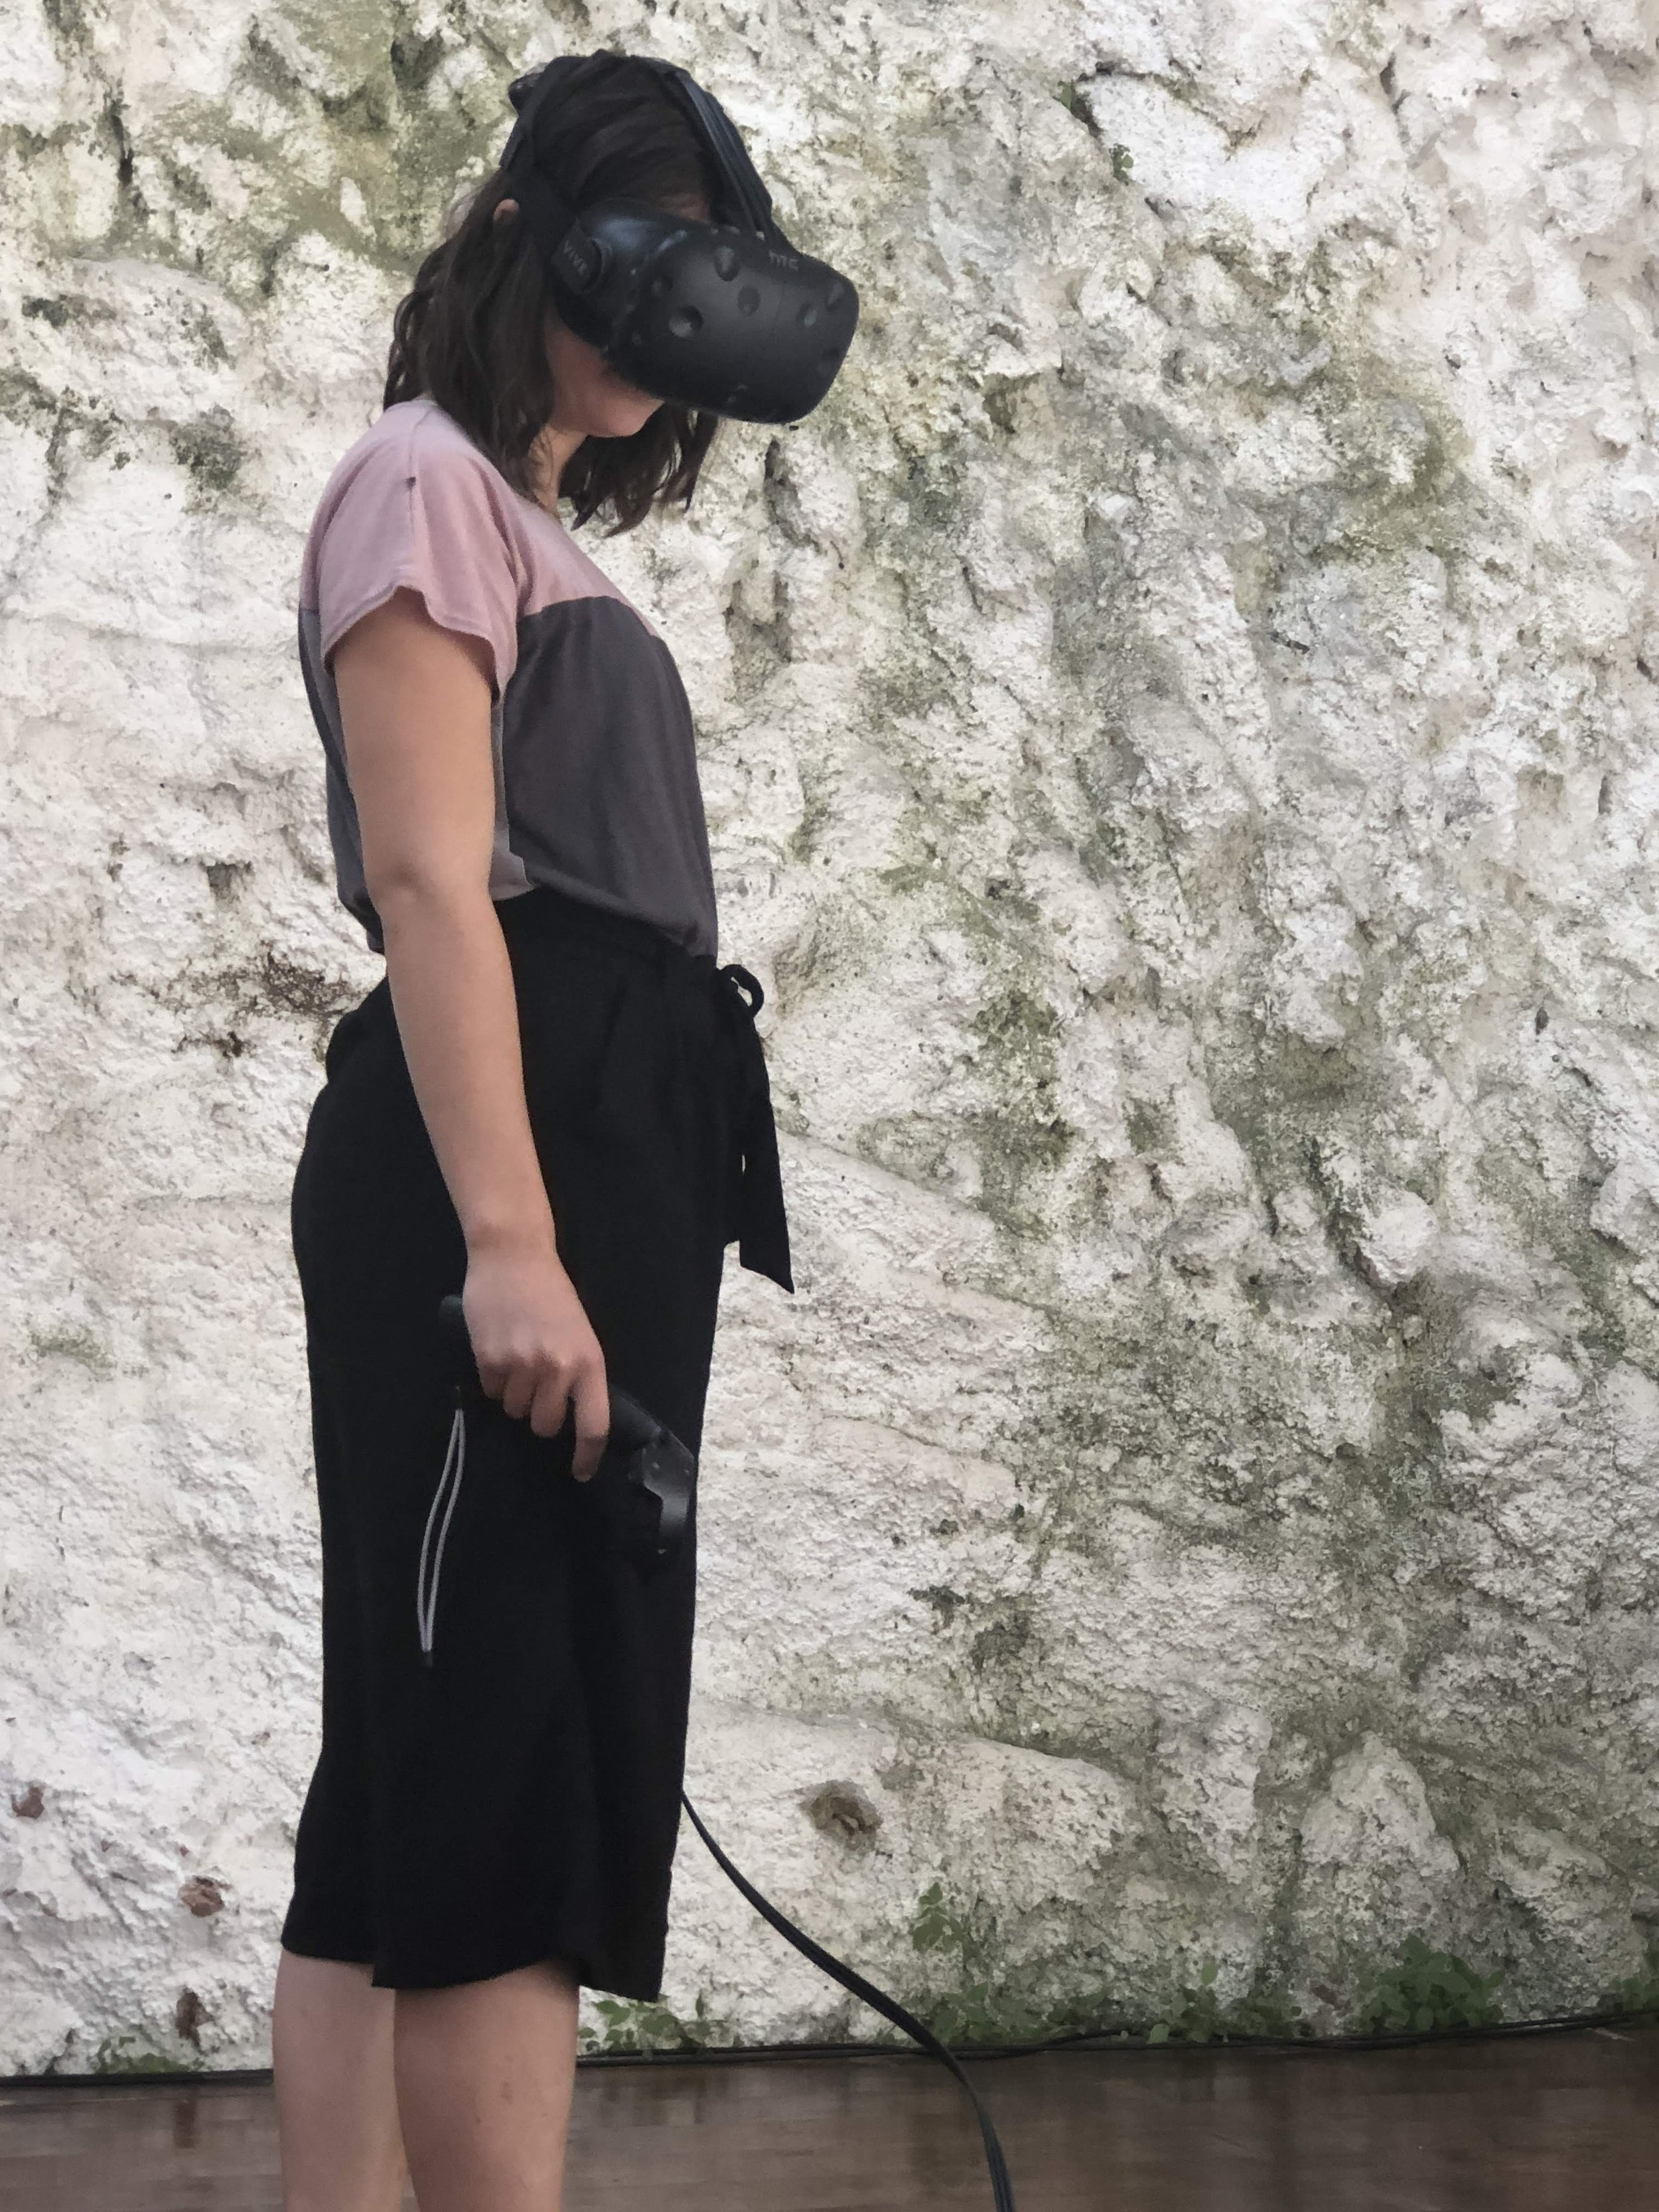 A VR mask in use